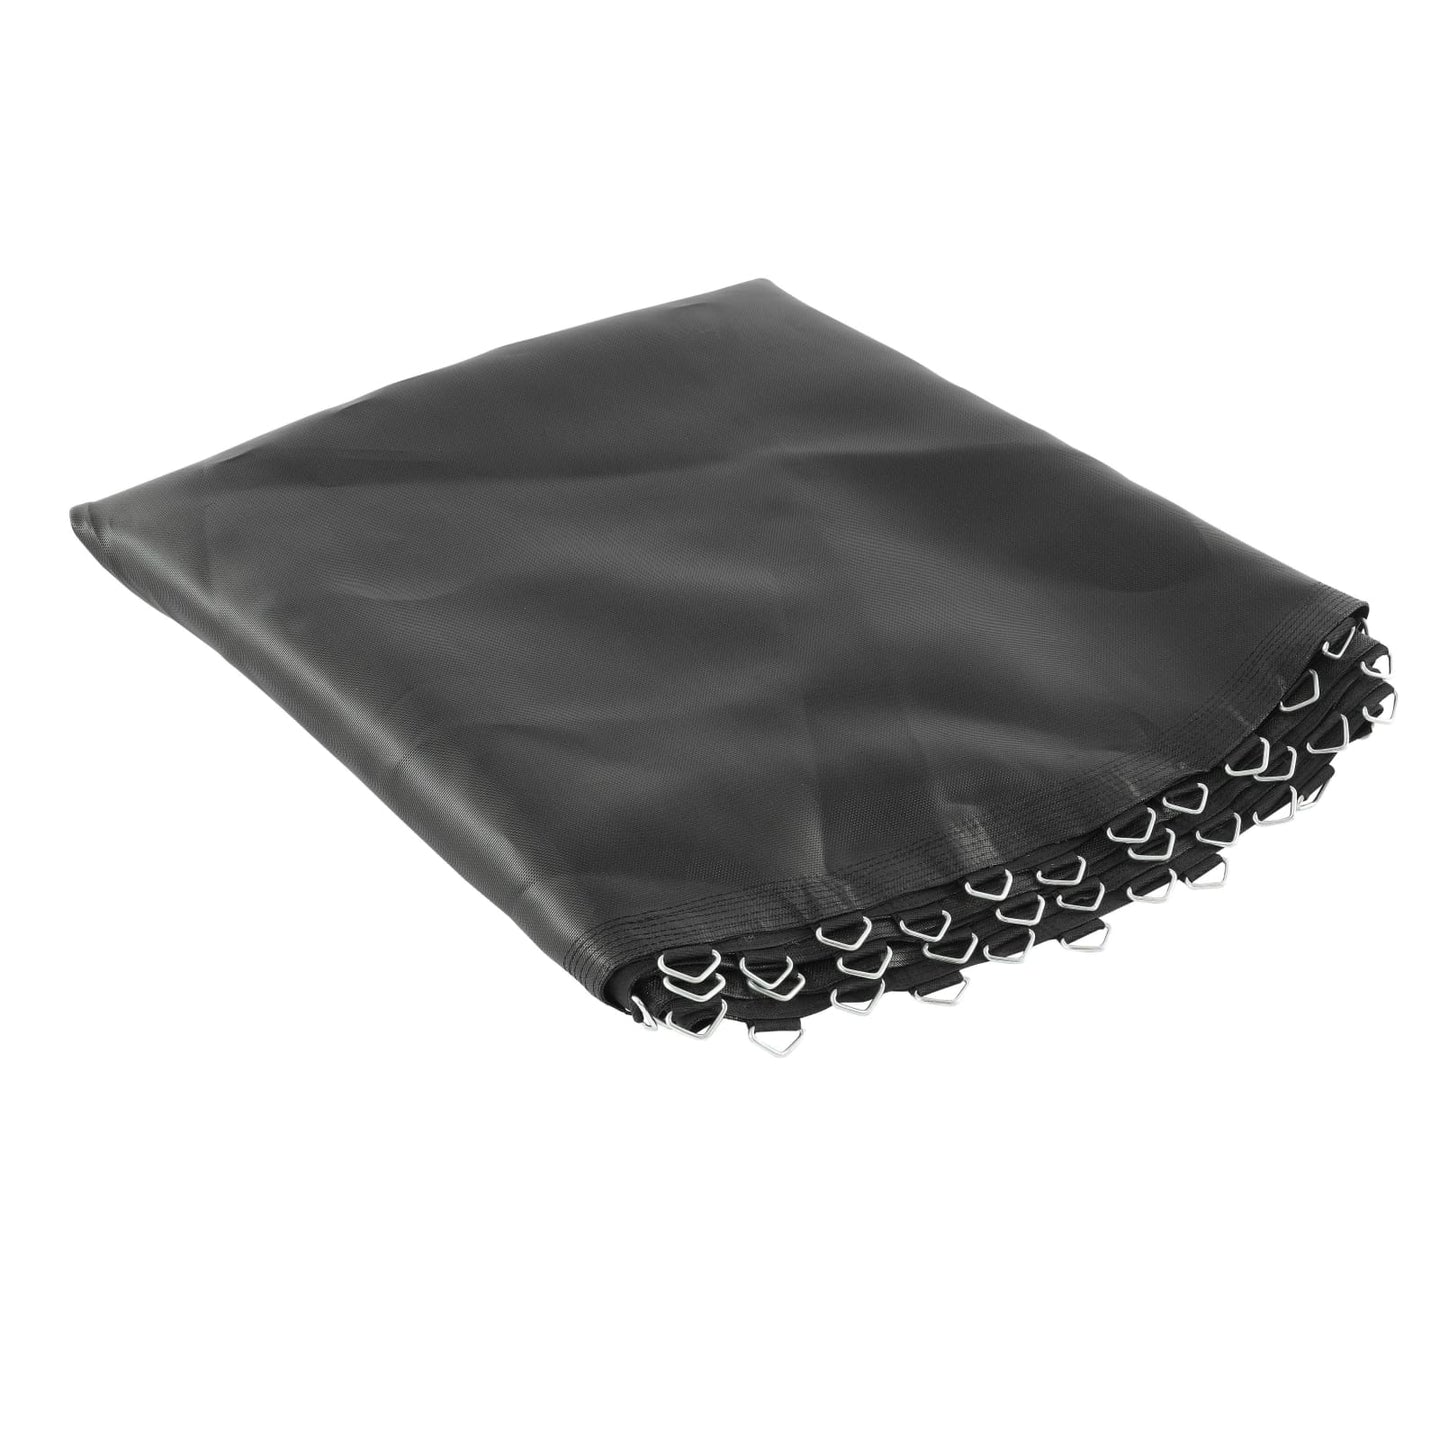 Upper Bounce Trampoline Replacement Jumping Mat Fits For 13 Ft. Round Frames W/ 84 V-Rings 5.5 Springs - Trampoline Replacements